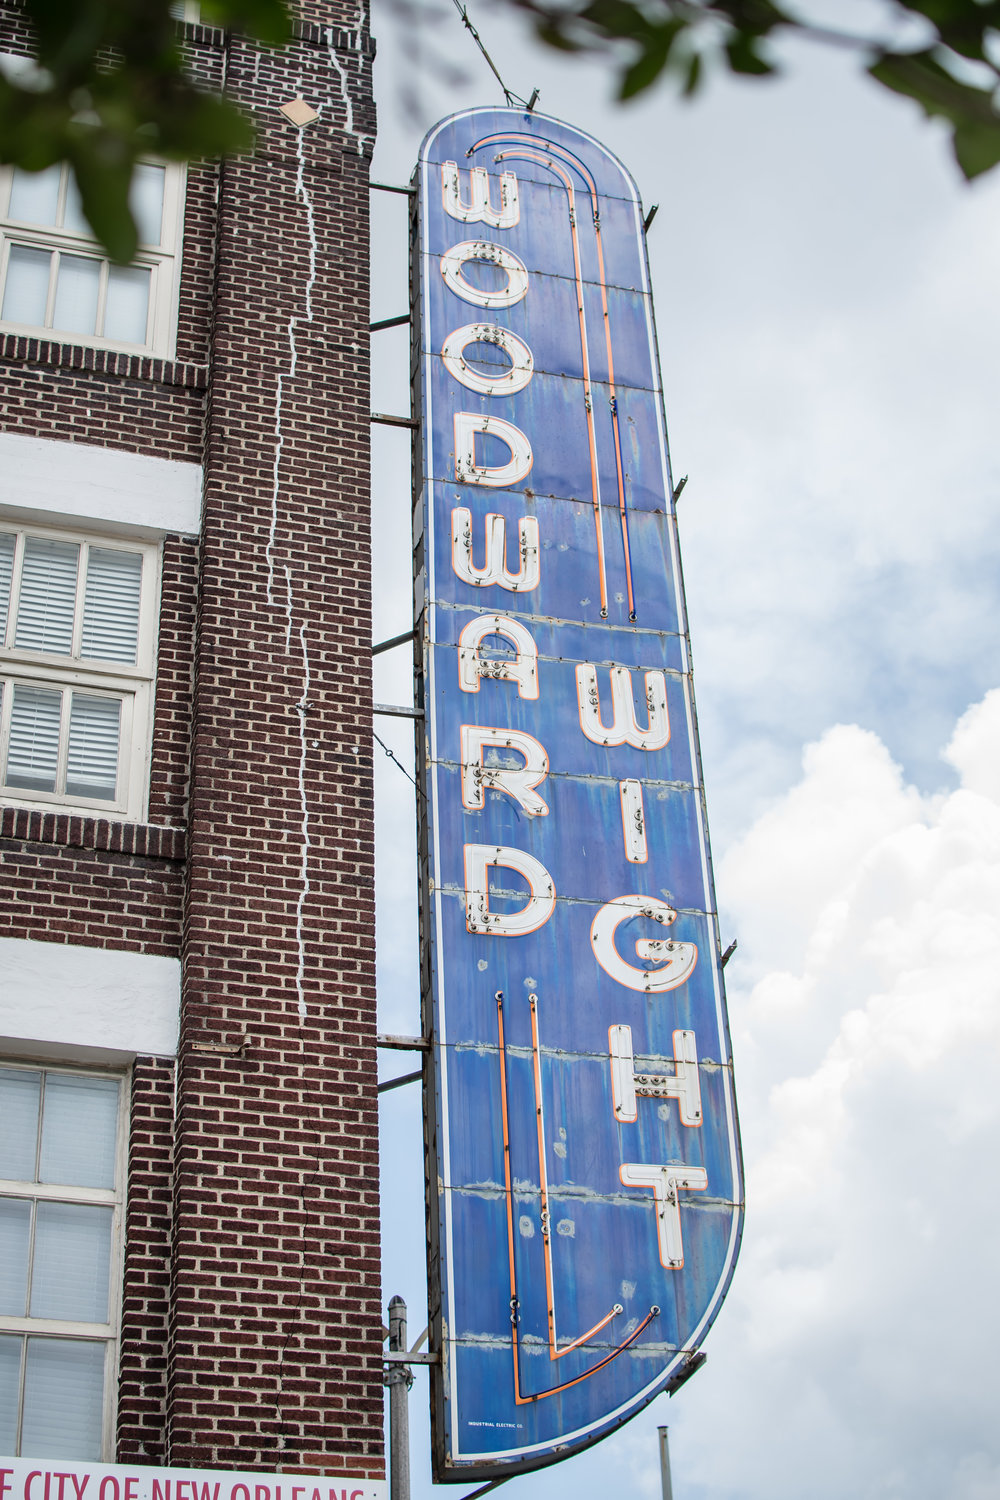 Woodward Wight in New Orleans